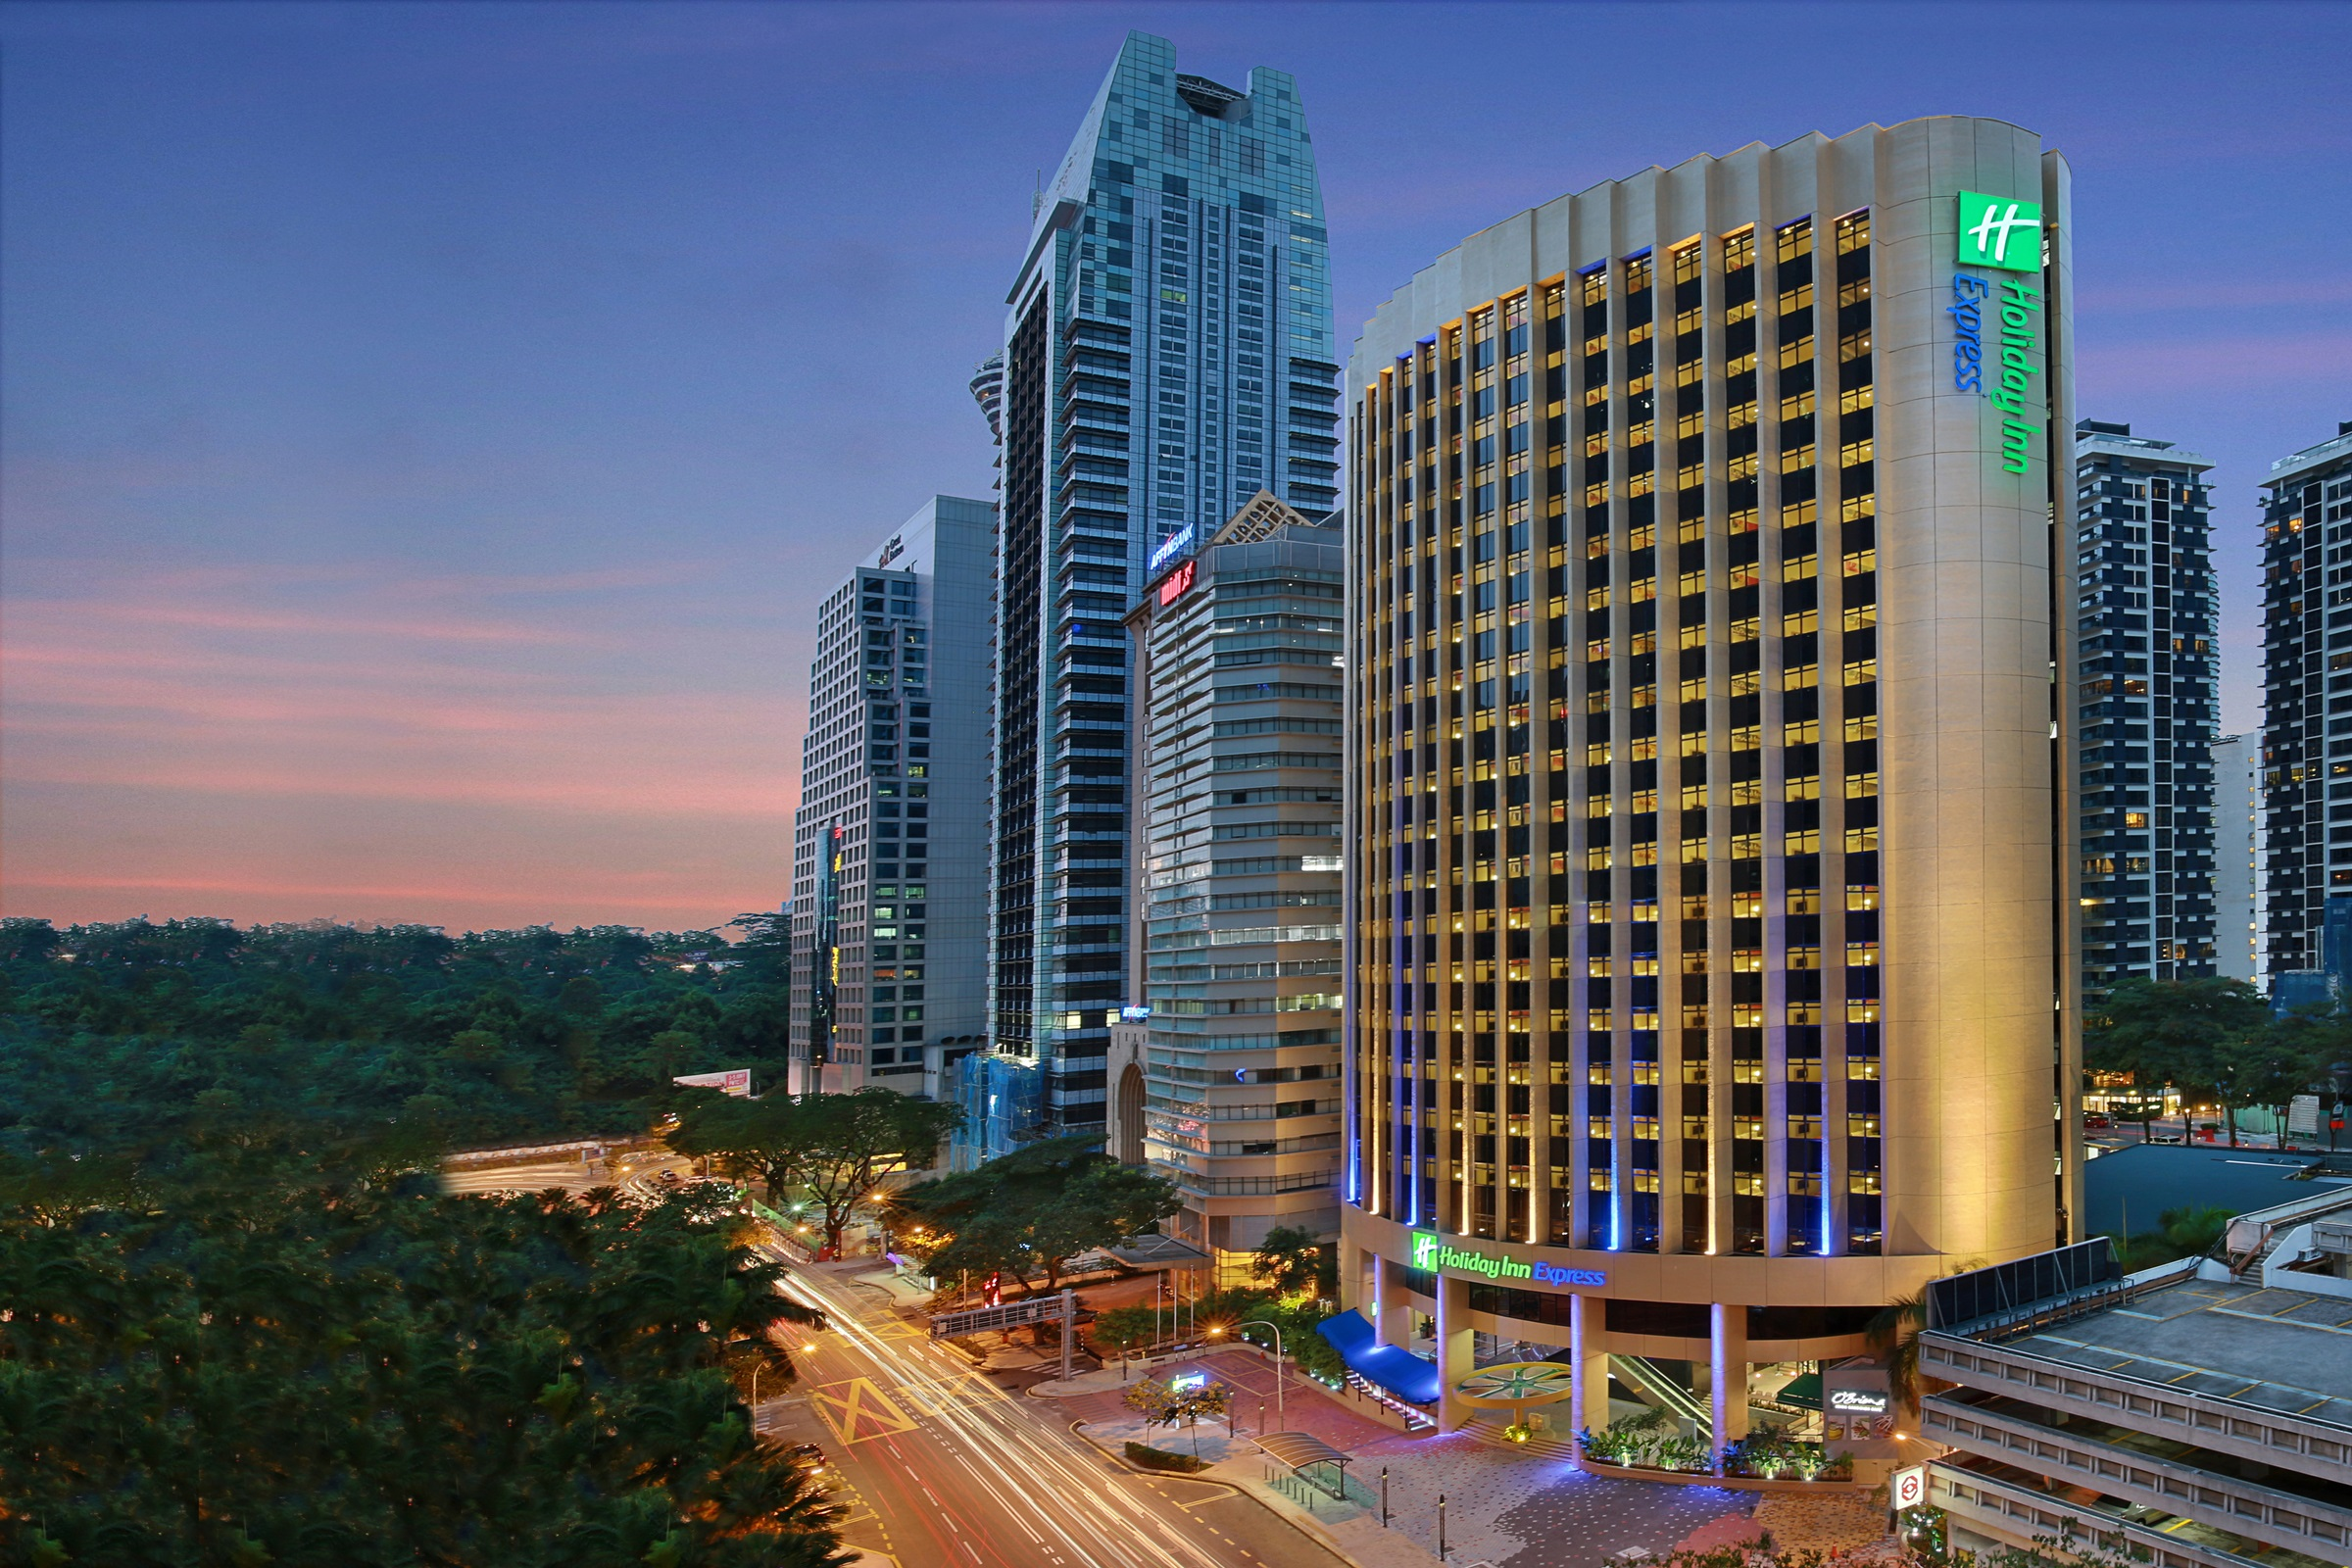 Holiday Inn Express marks entry into Malaysia with the opening of Holiday Inn Express Kuala Lumpur City Centre